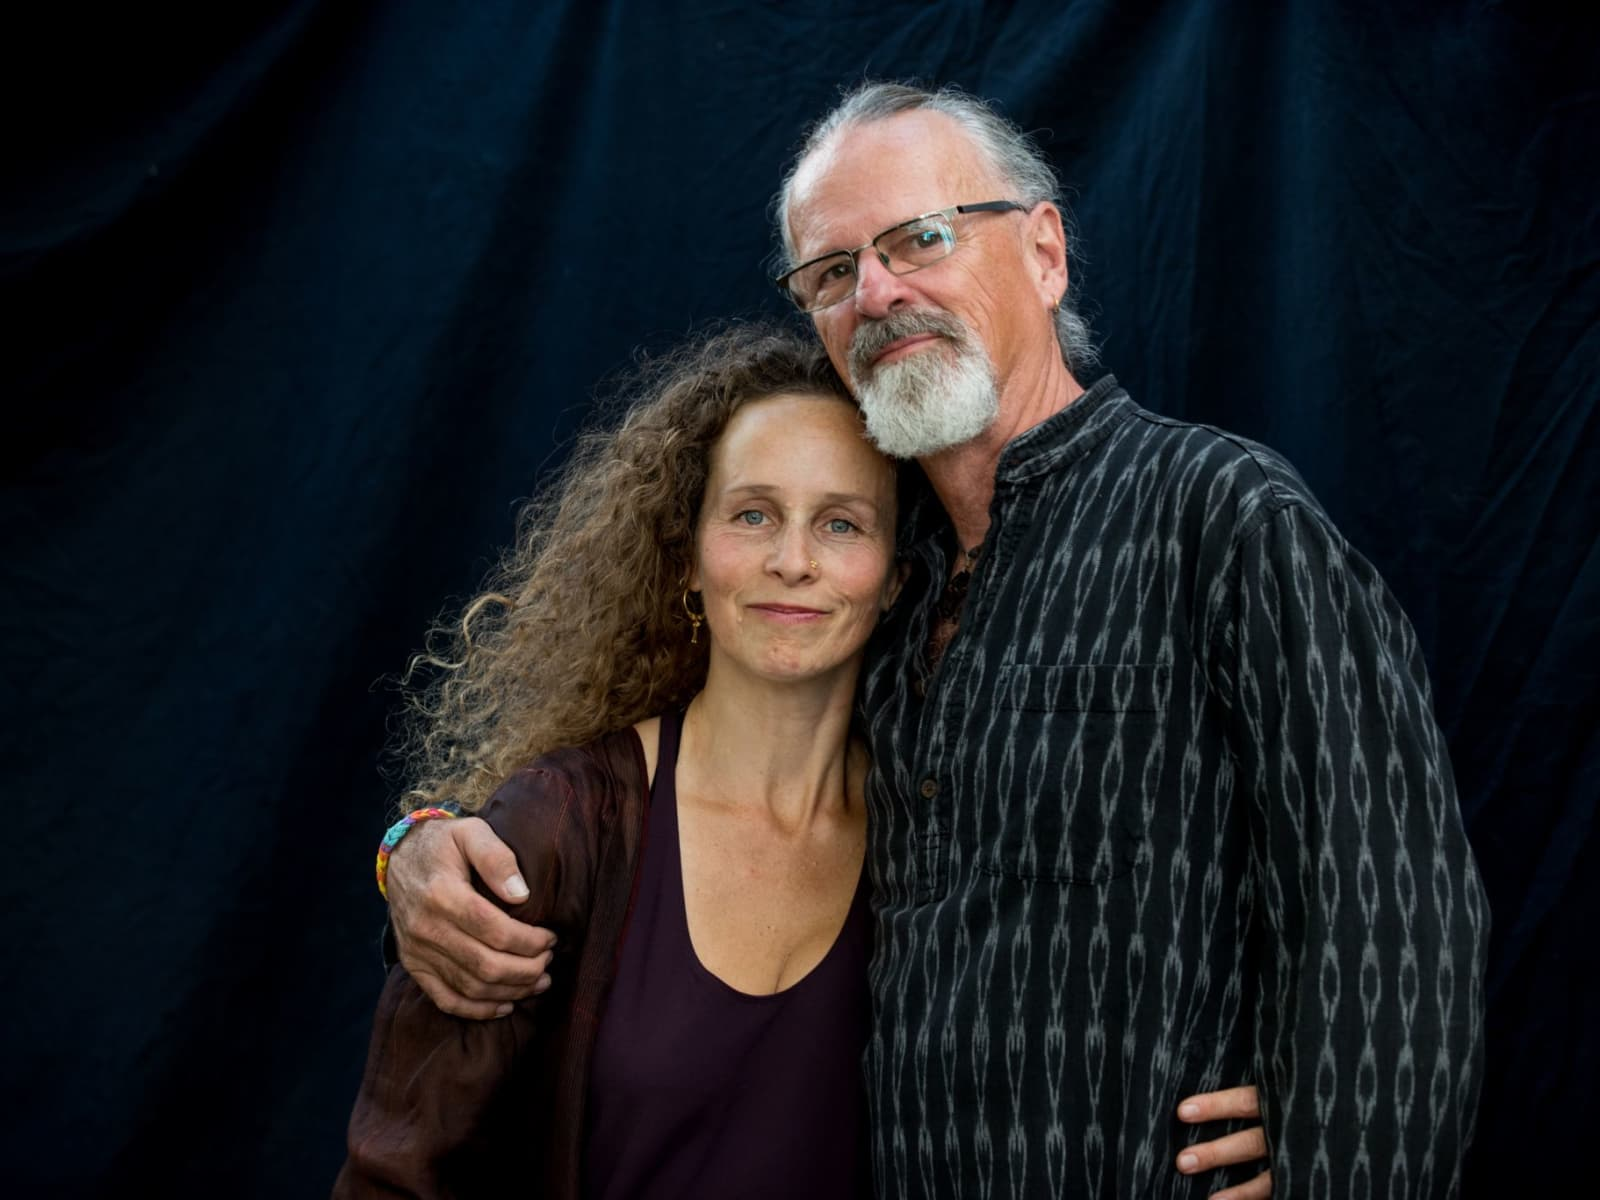 Odette & Ron from Vancouver, British Columbia, Canada